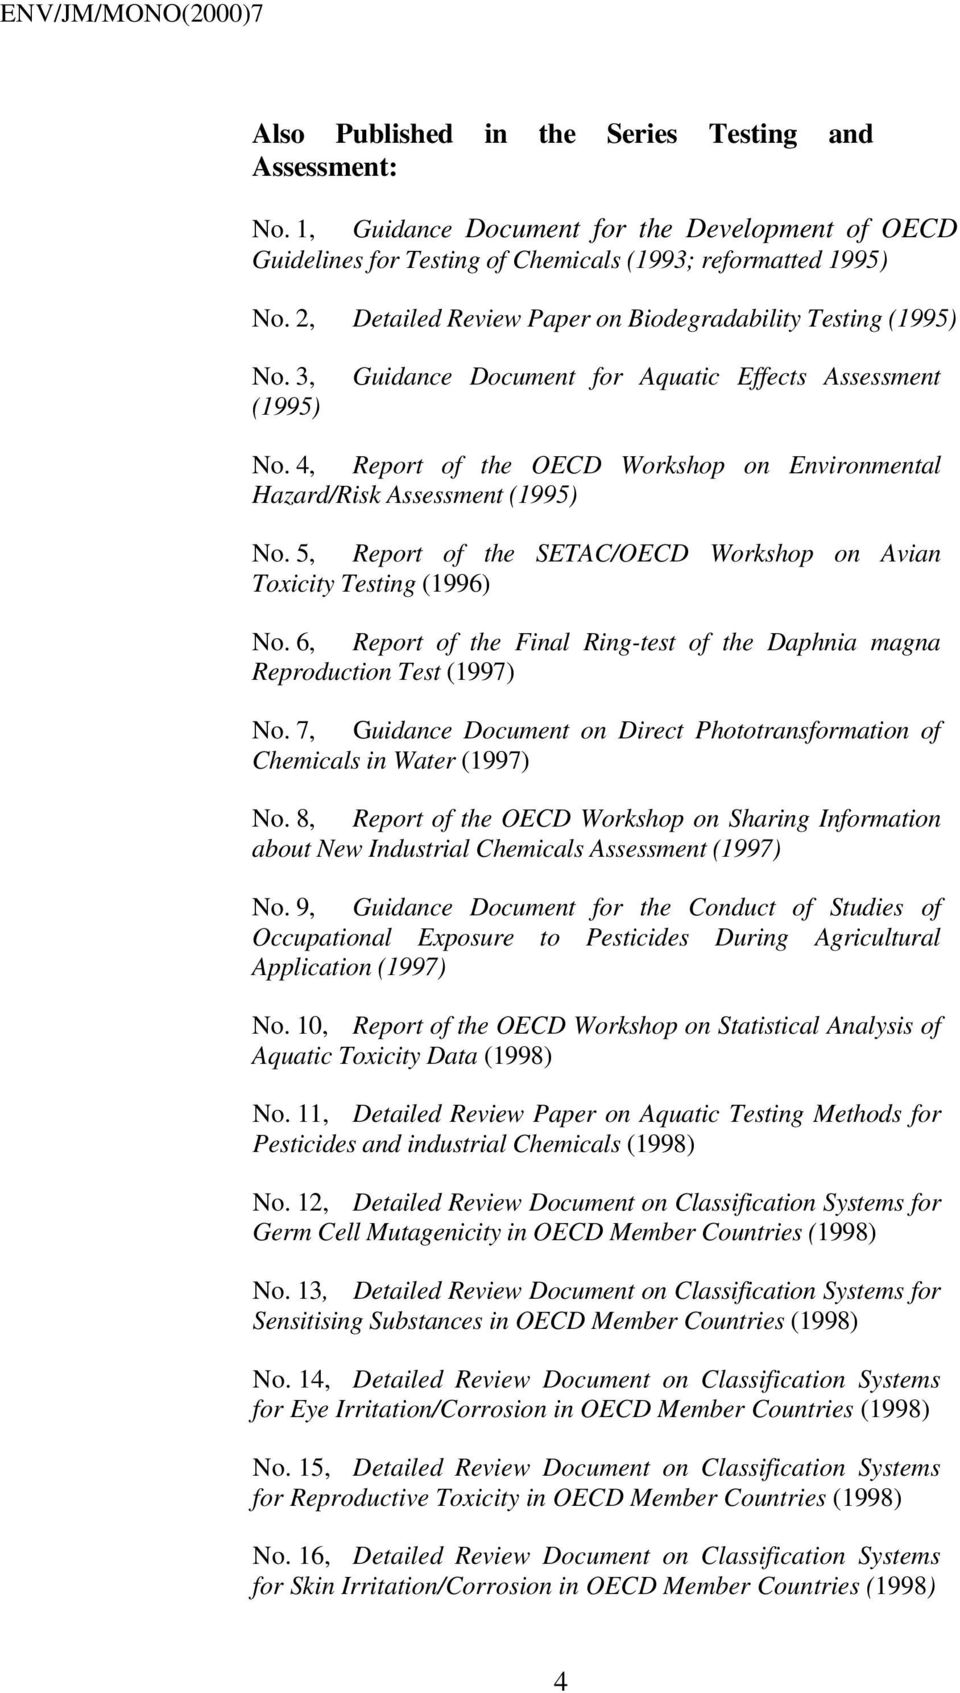 4, Report of the OECD Workshop on Environmental Hazard/Risk Assessment (1995) No. 5, Report of the SETAC/OECD Workshop on Avian Toxicity Testing (1996) No.